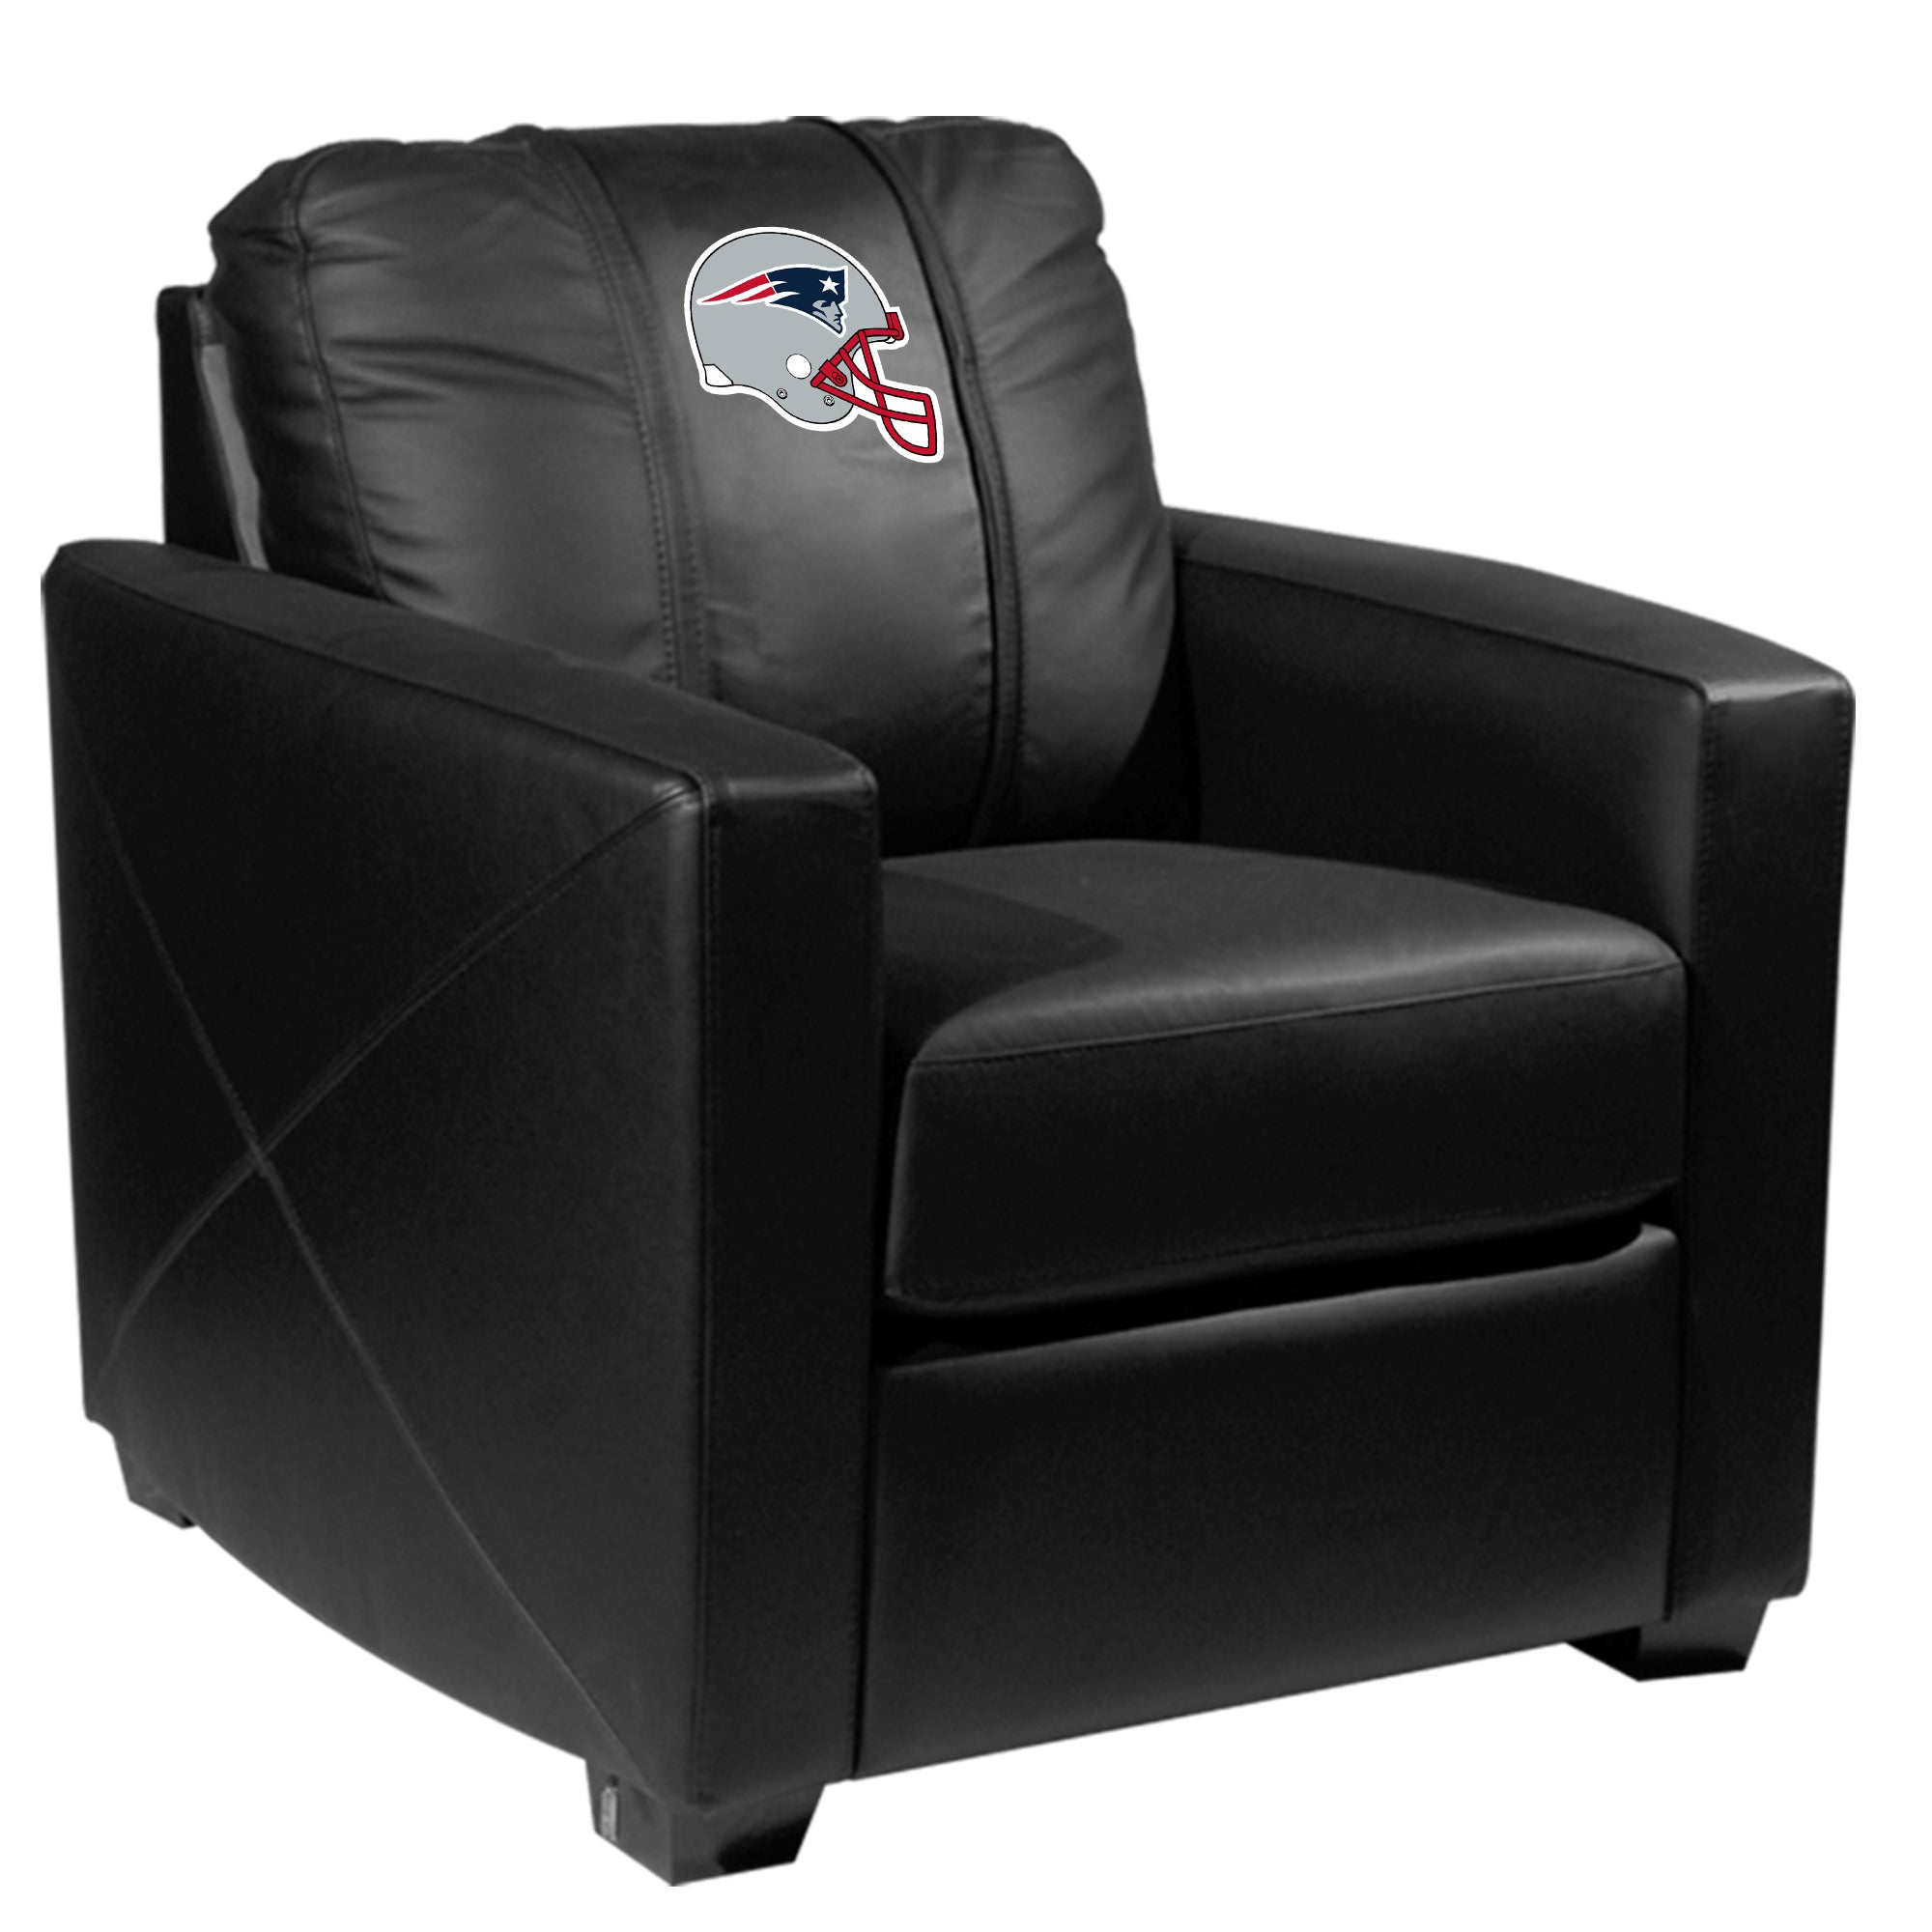 Silver Club Chair with  New England Patriots Helmet Logo